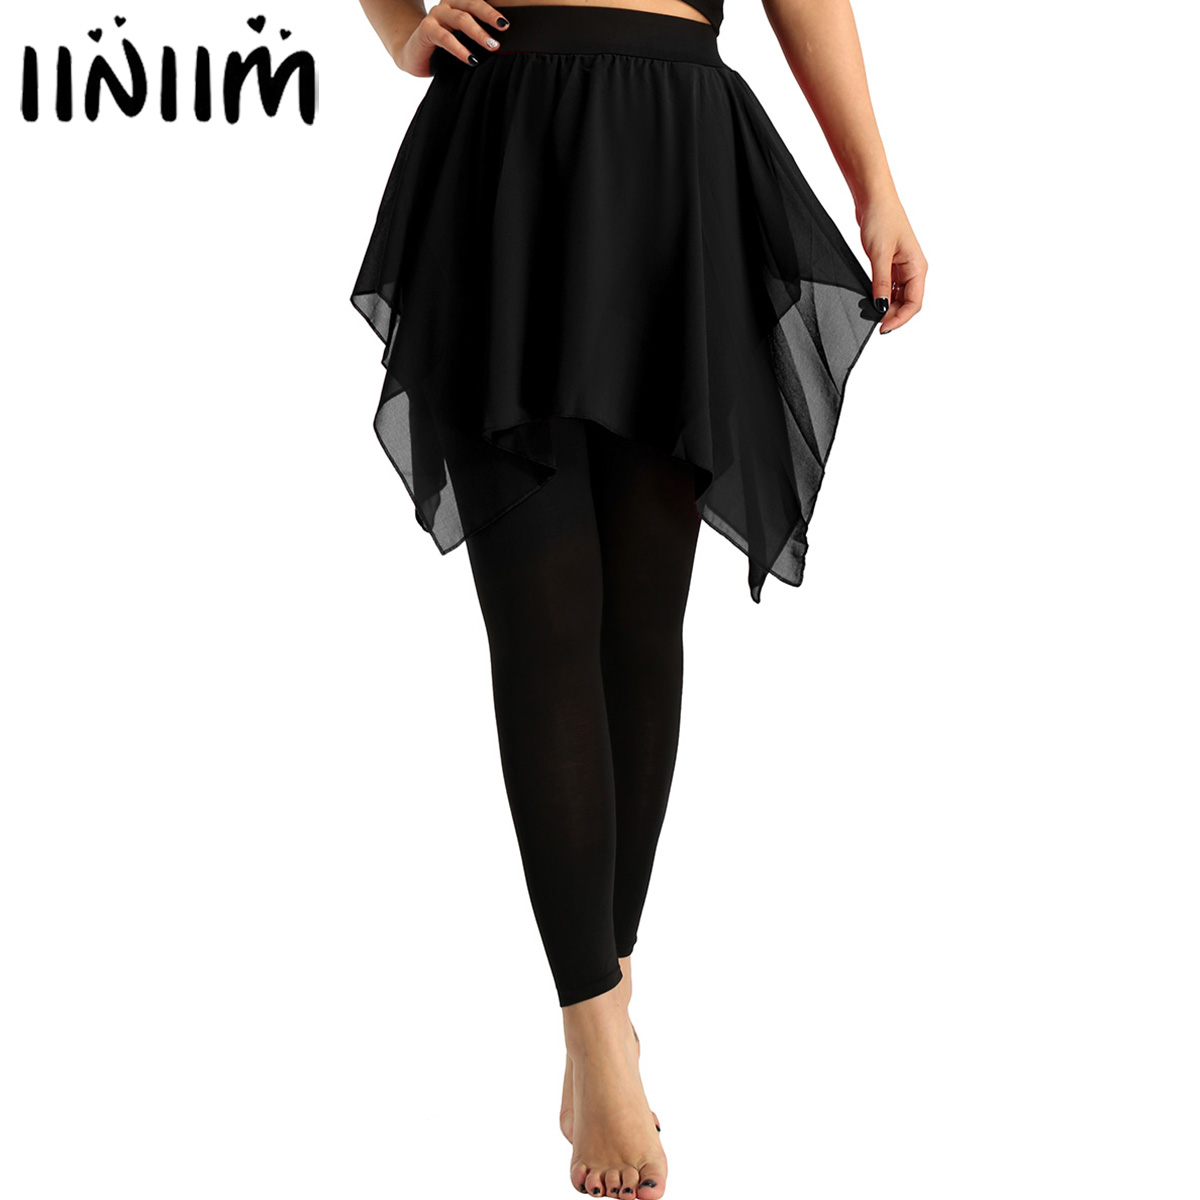 Womens Flowy Cropped Footless Leggings with Skirt Yoga Latin Pantskirt Adult Stage Performance Costume Ballerina Dance Pantskirt